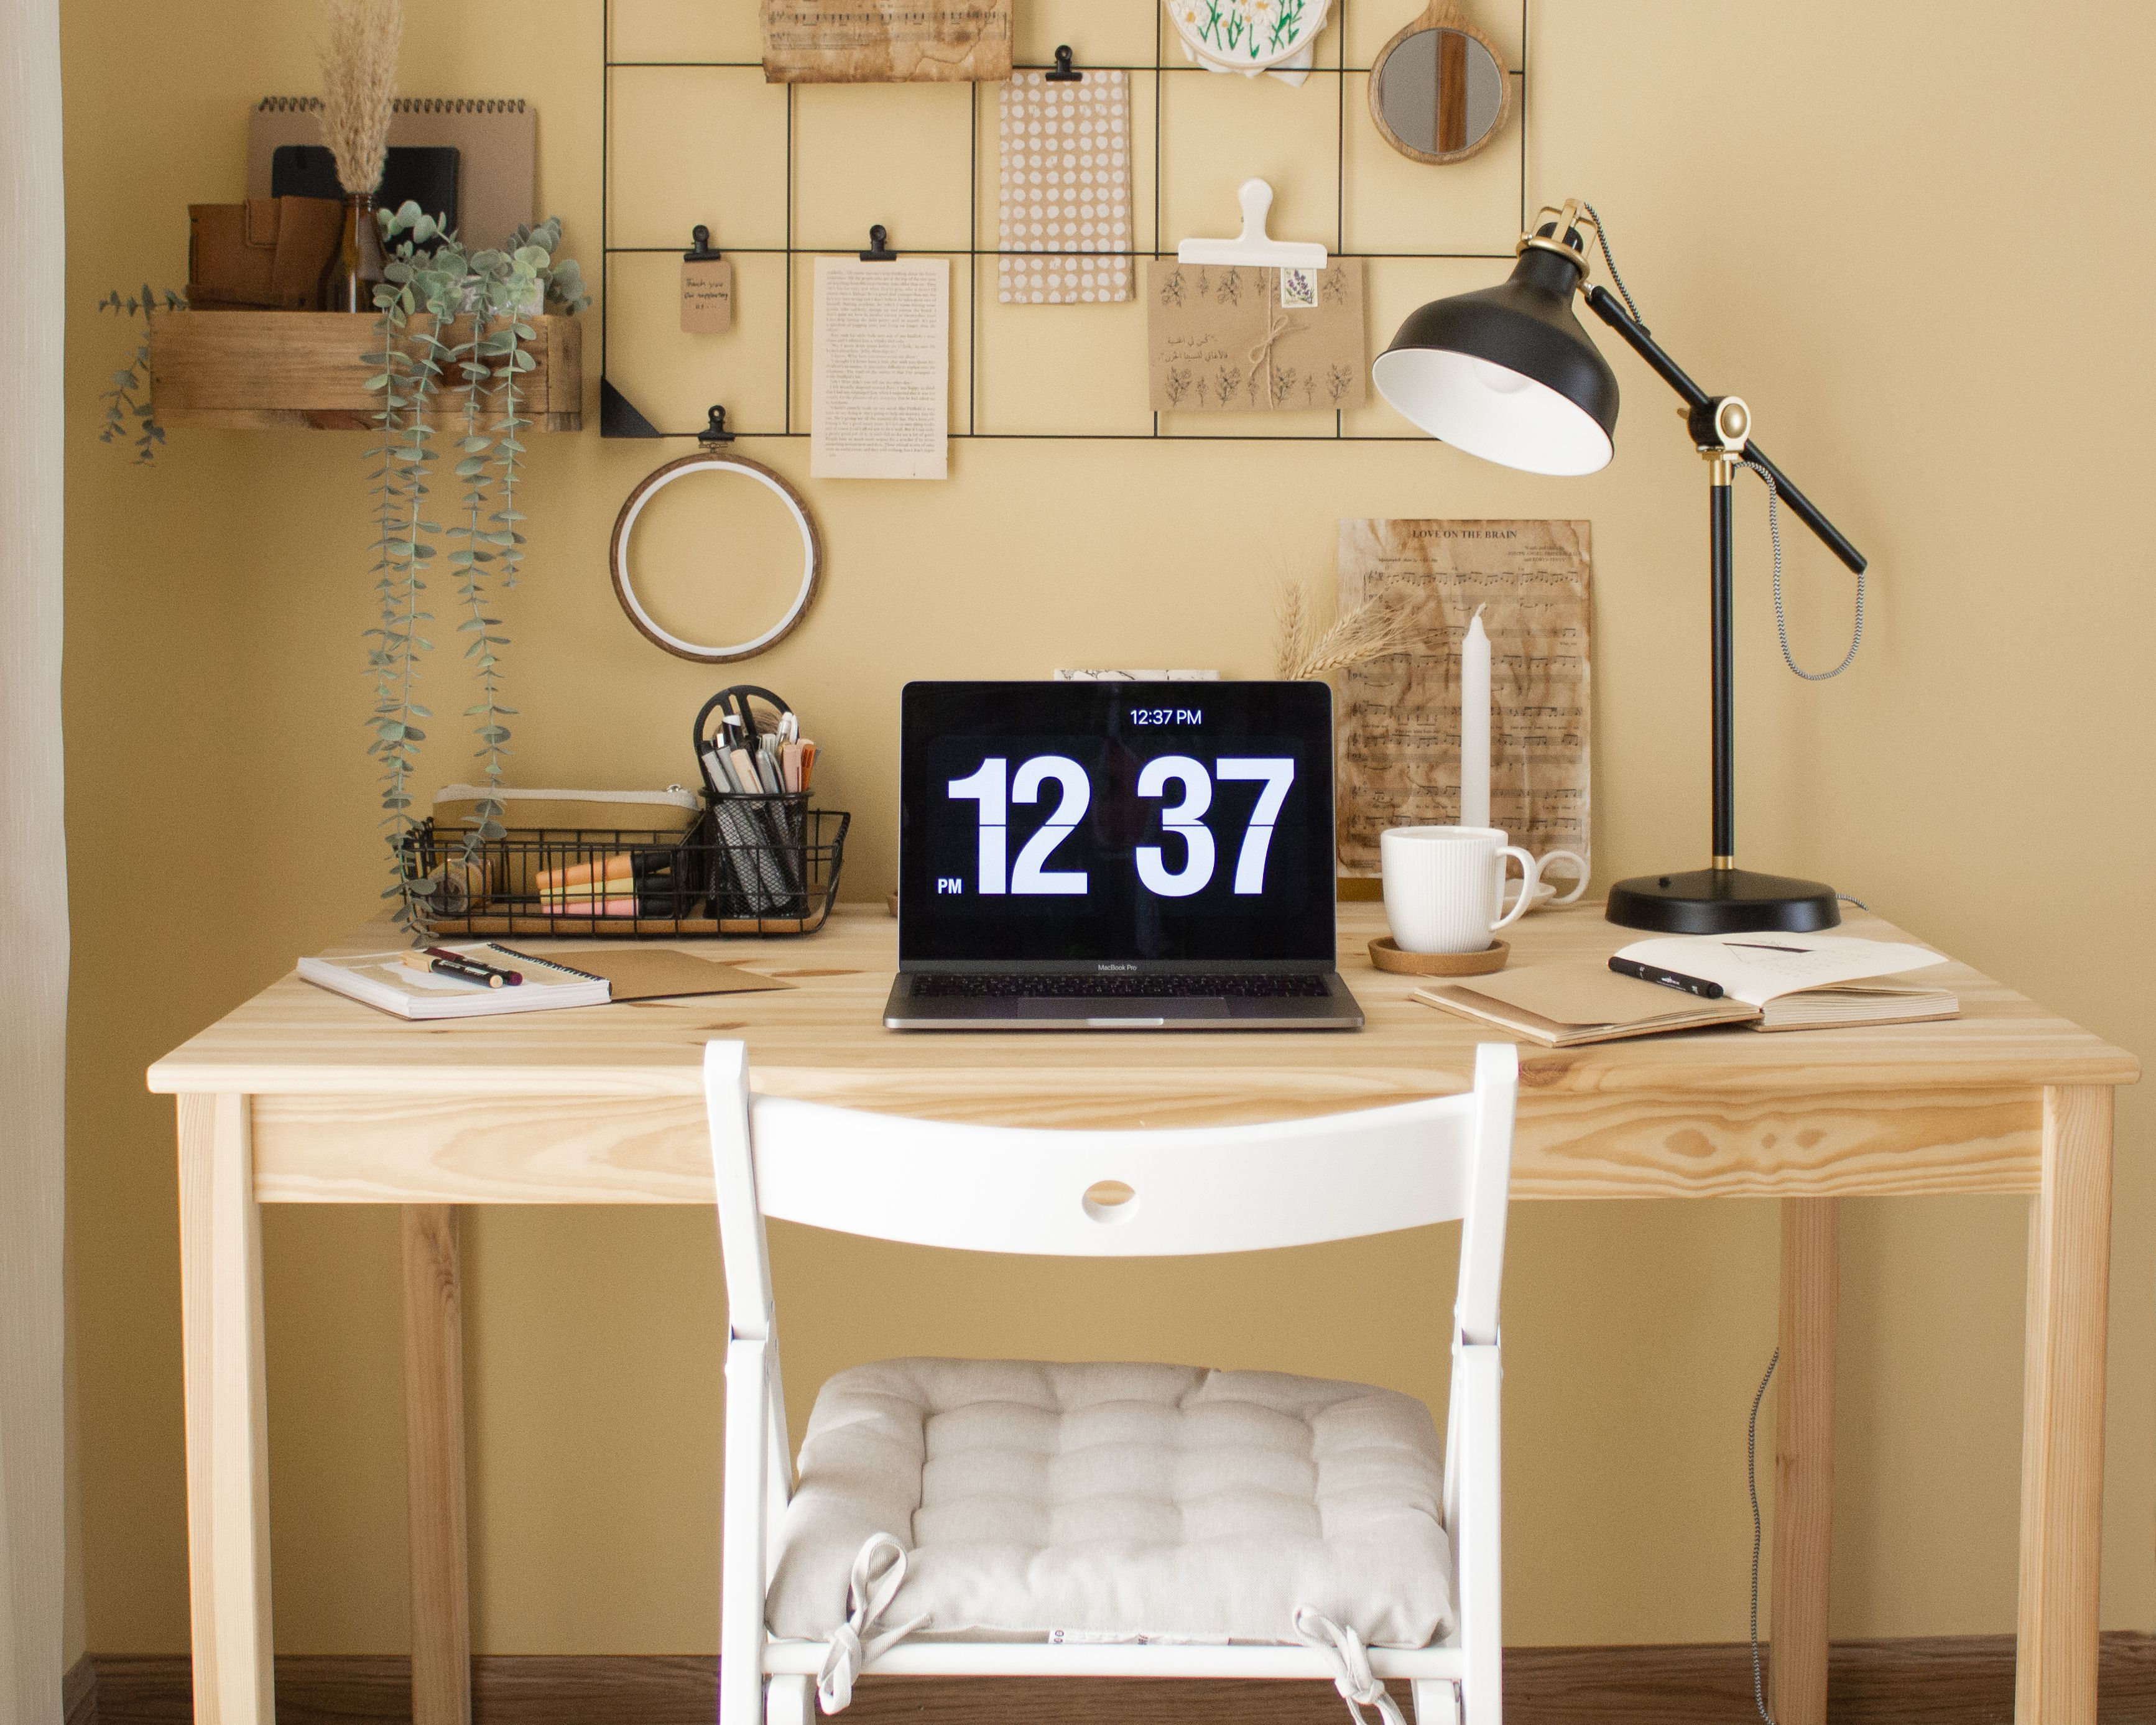 Setting Up a Productive and Efficient Home Office